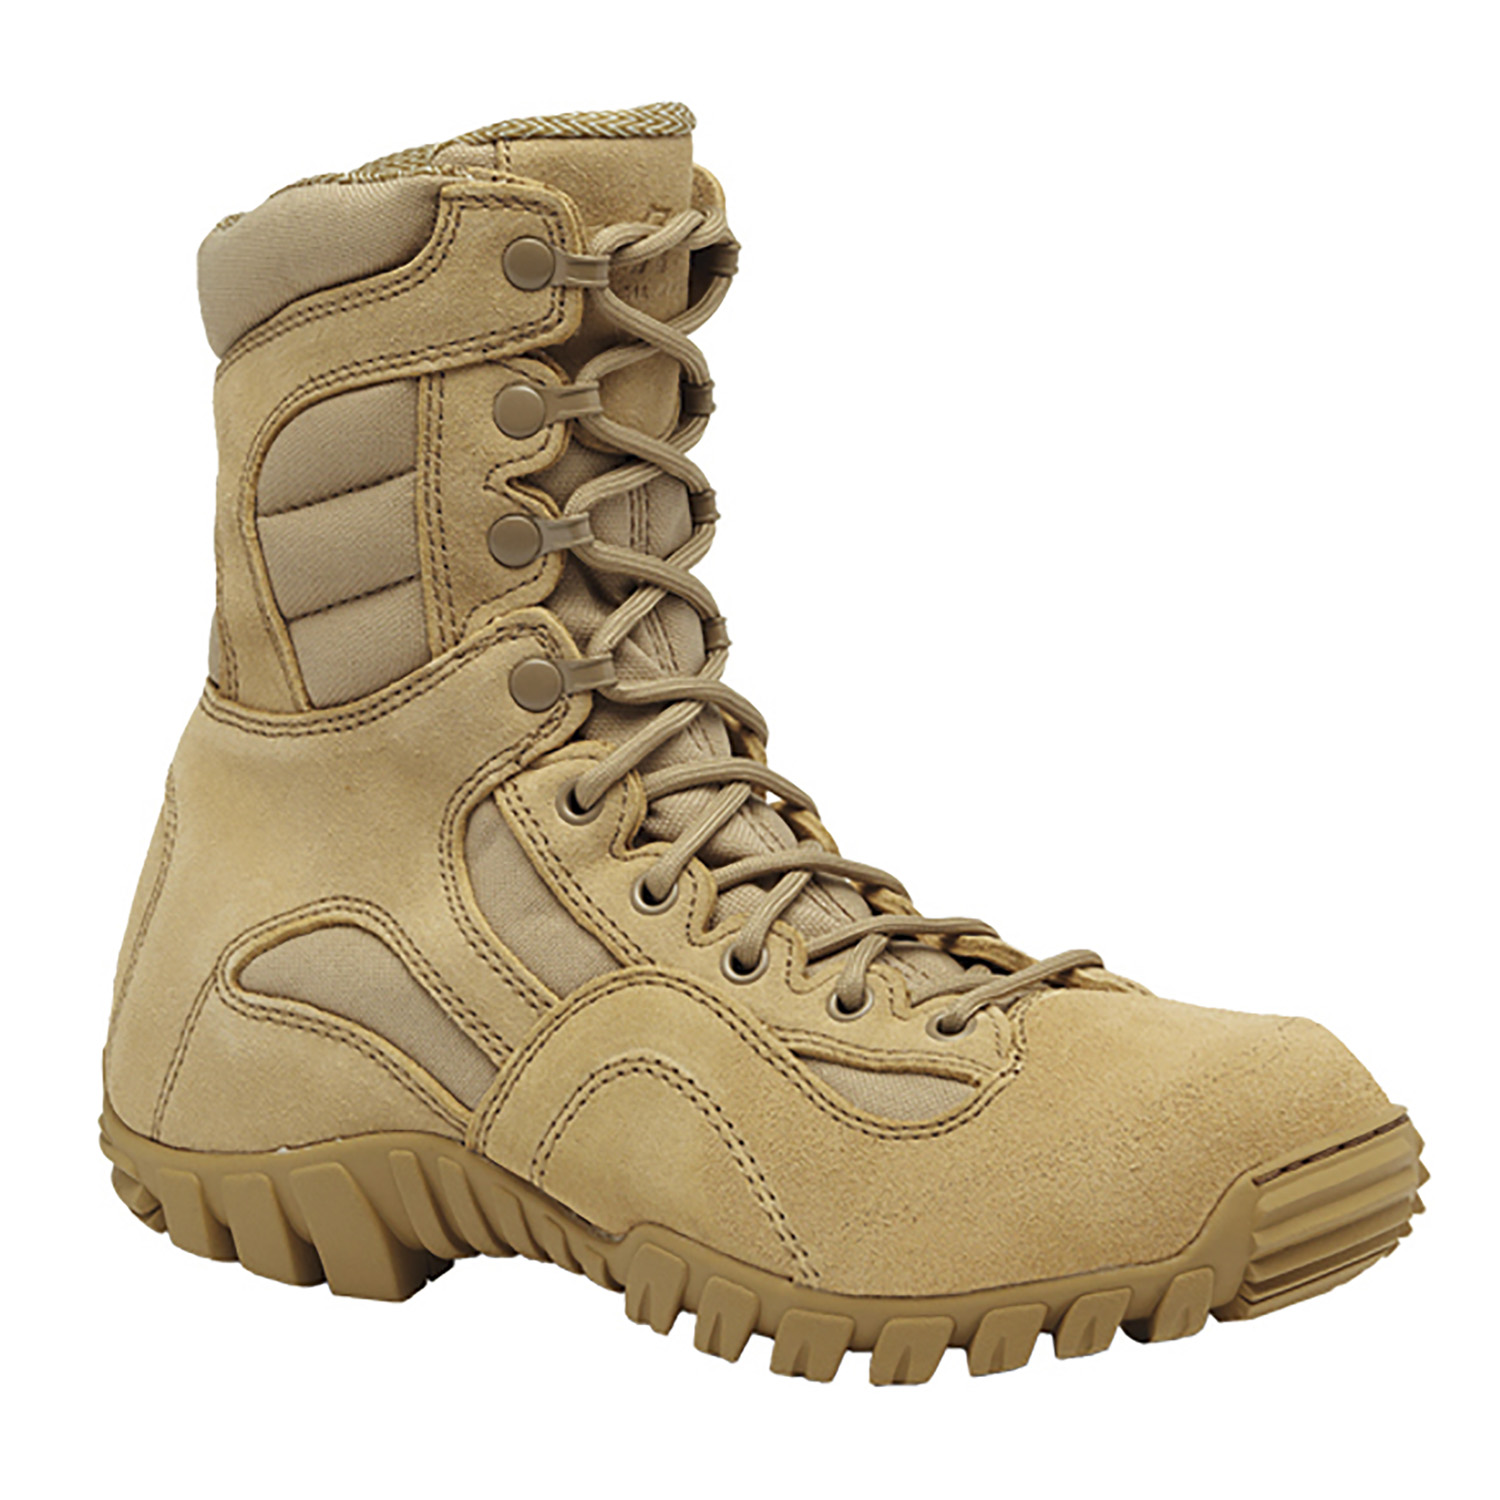 Belleville Khyber II Hot Weather Lightweight AR 670-1 Boot